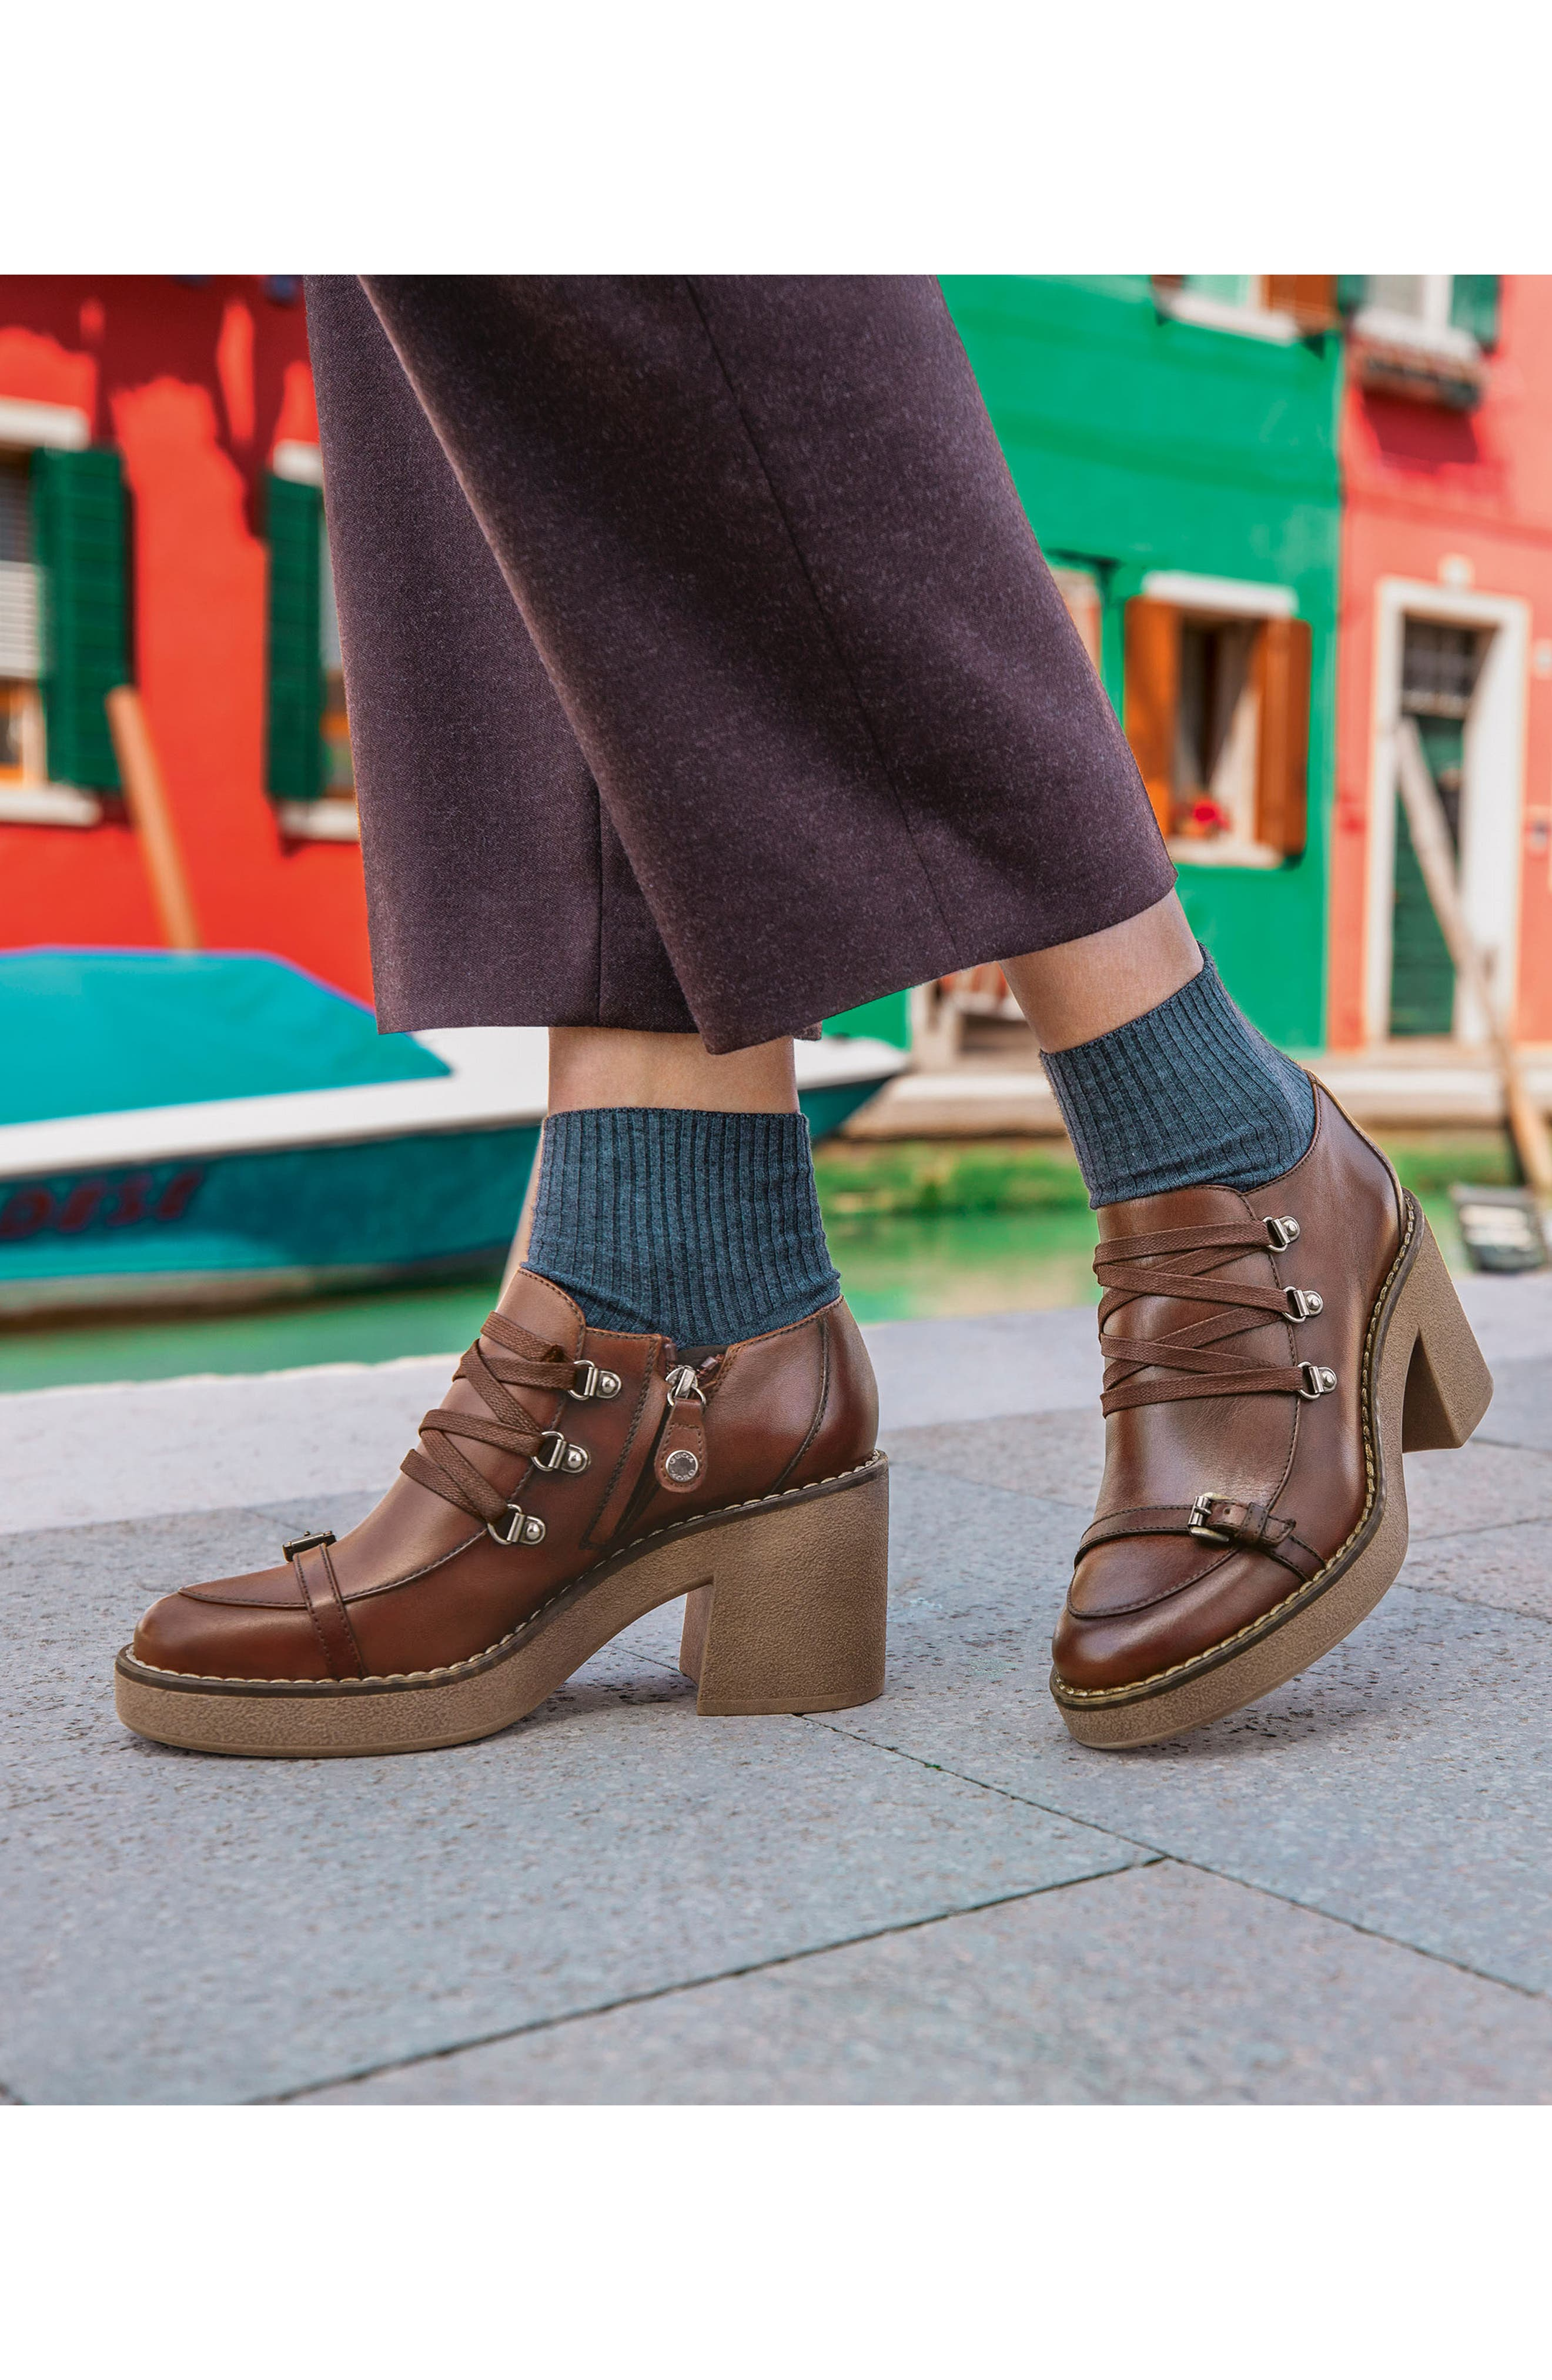 Adrya Bootie,                             Alternate thumbnail 8, color,                             BROWN LEATHER